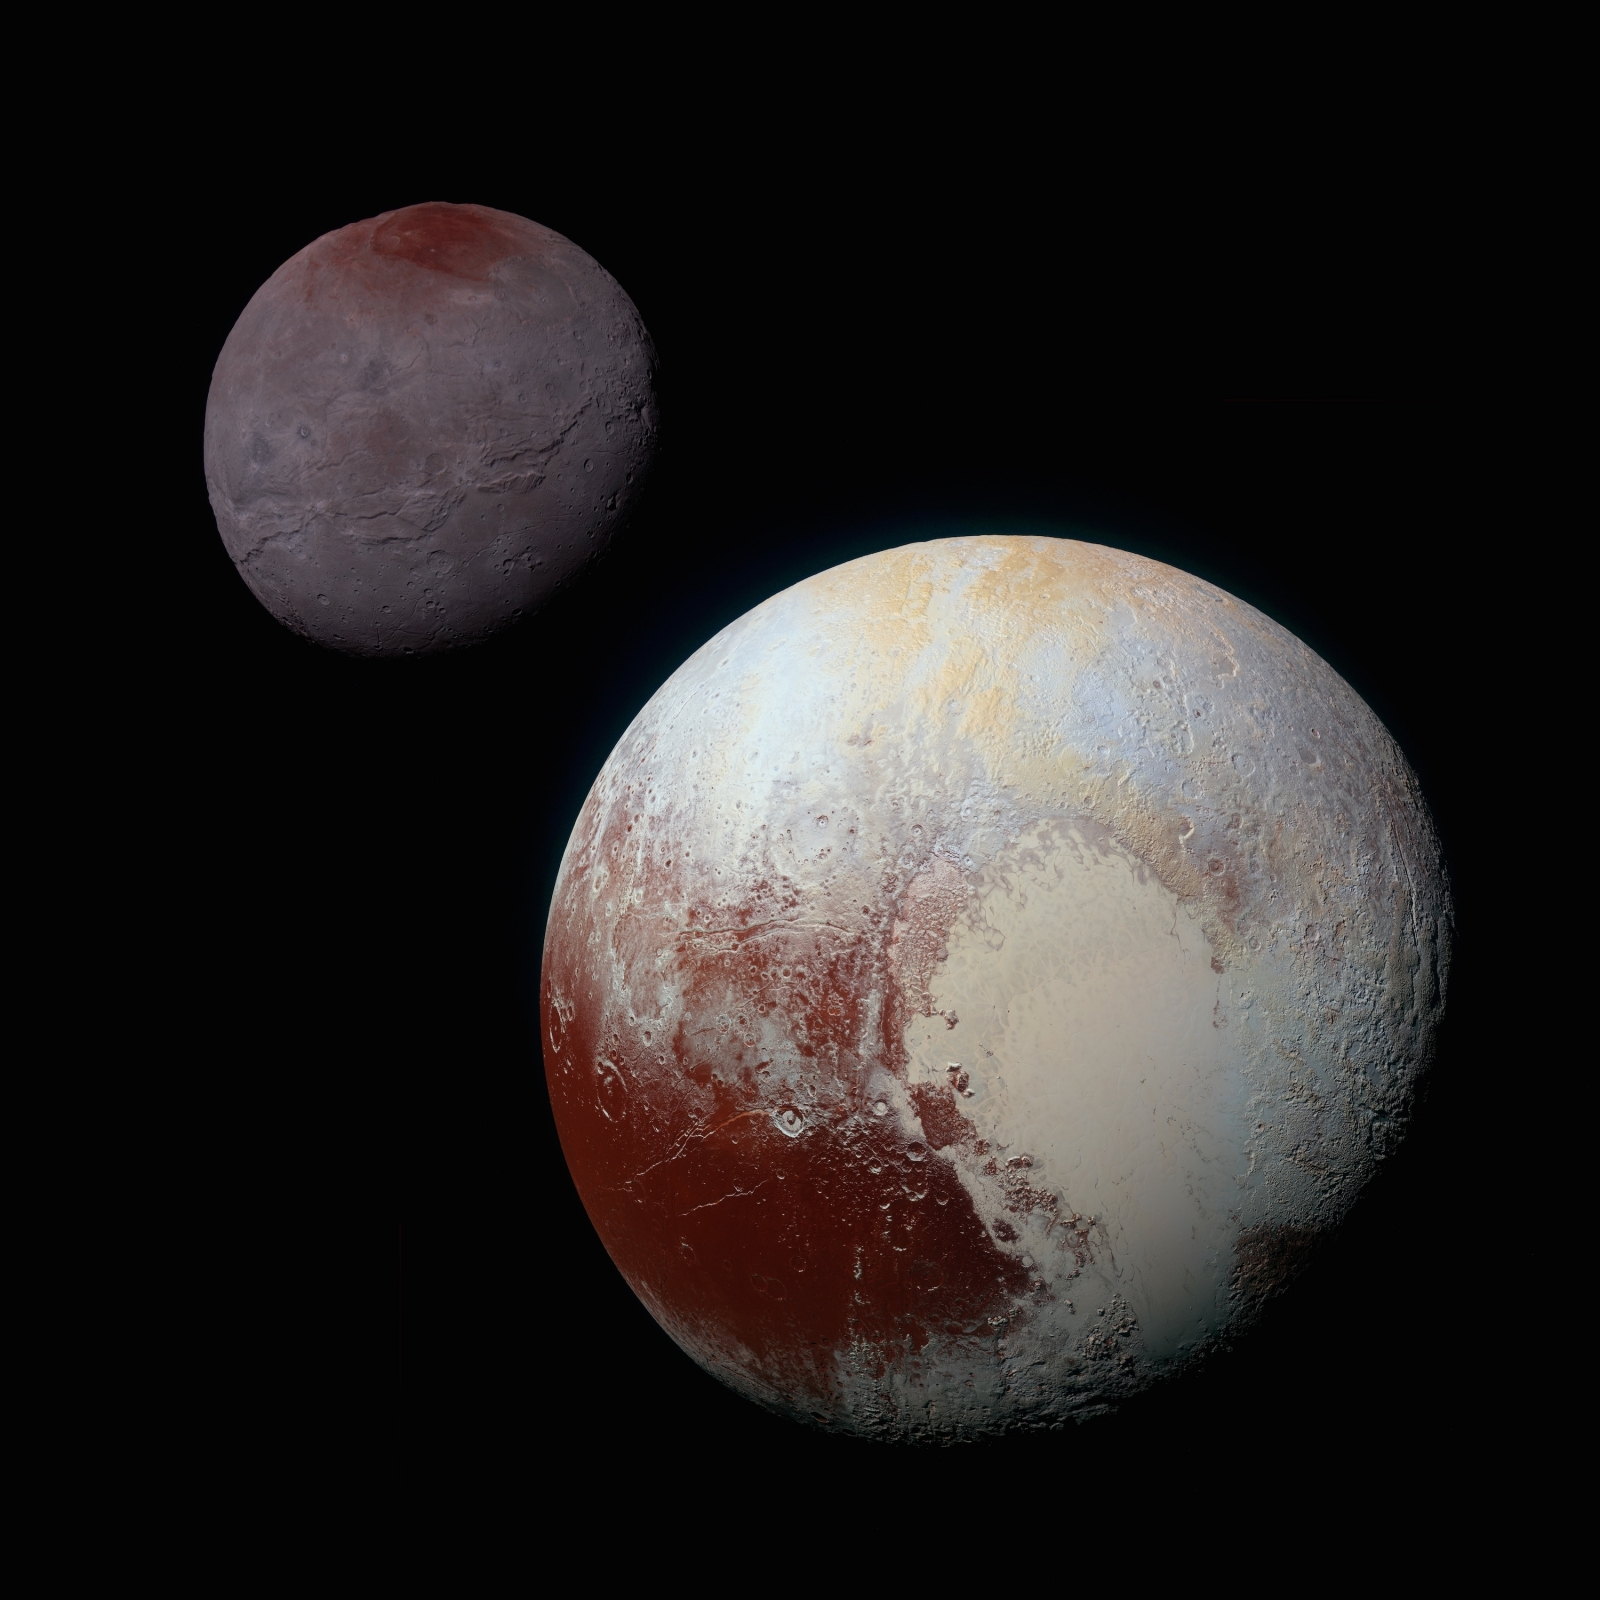 Pluto and its largest moon